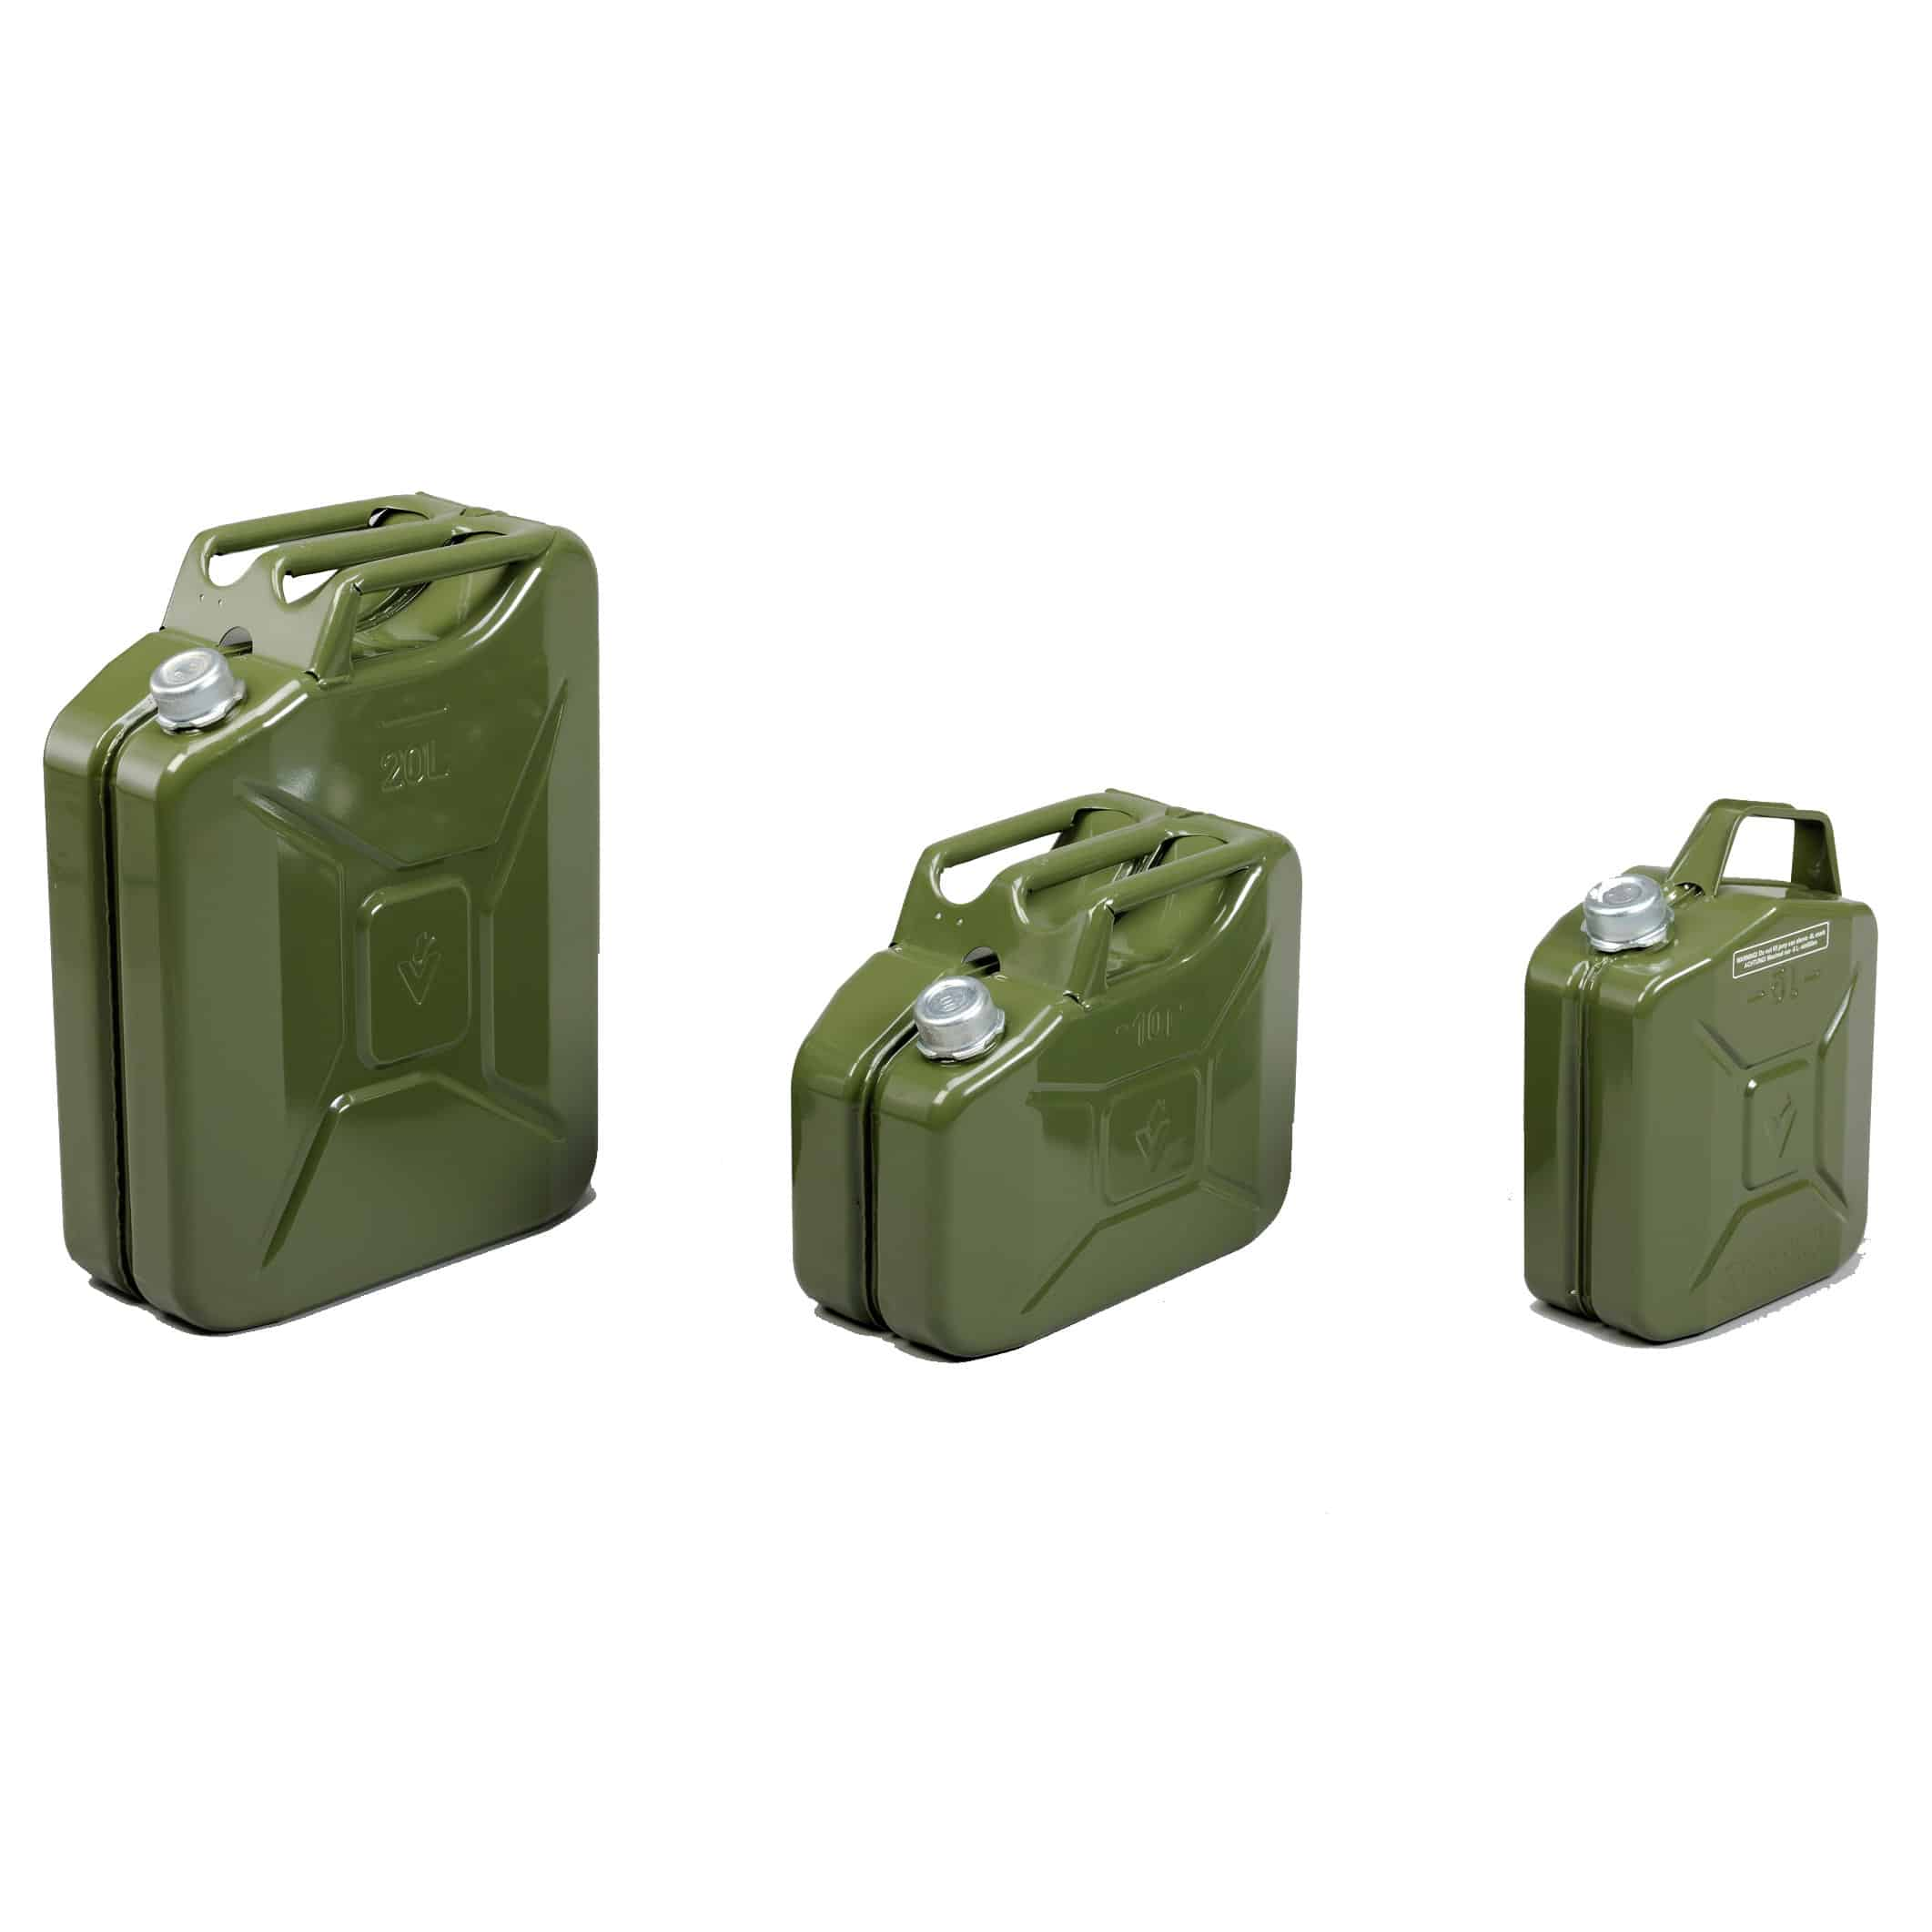 Valpro Magnetic Screw Cap Steel Jerry Can